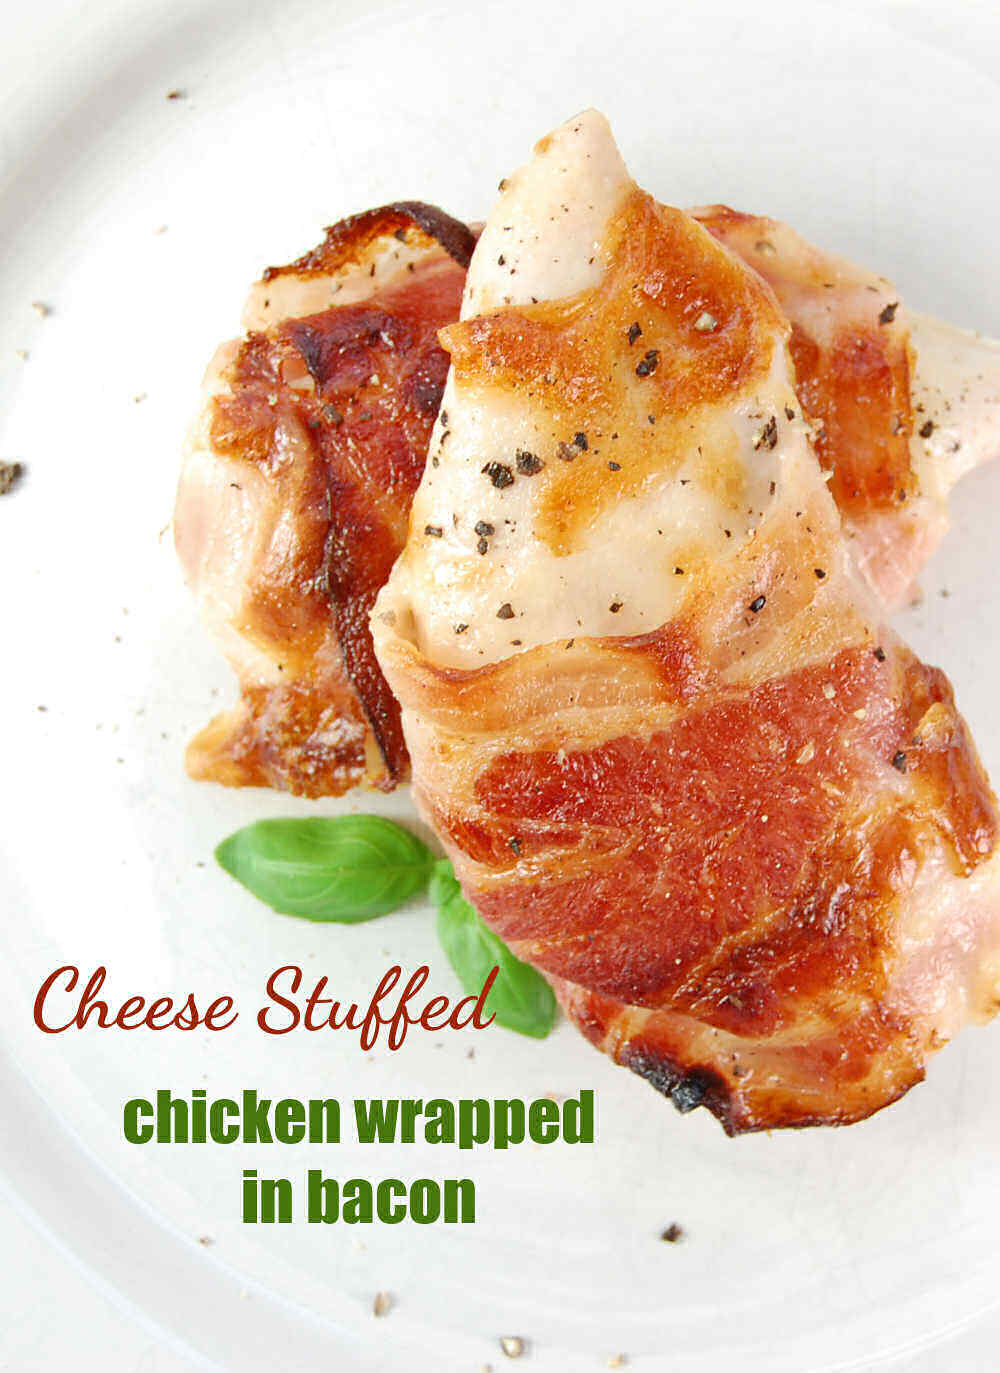 Bacon wrapped chicken brest with text reading Cheese Stuffed Chicken Breasts Wrapped in Bacon.